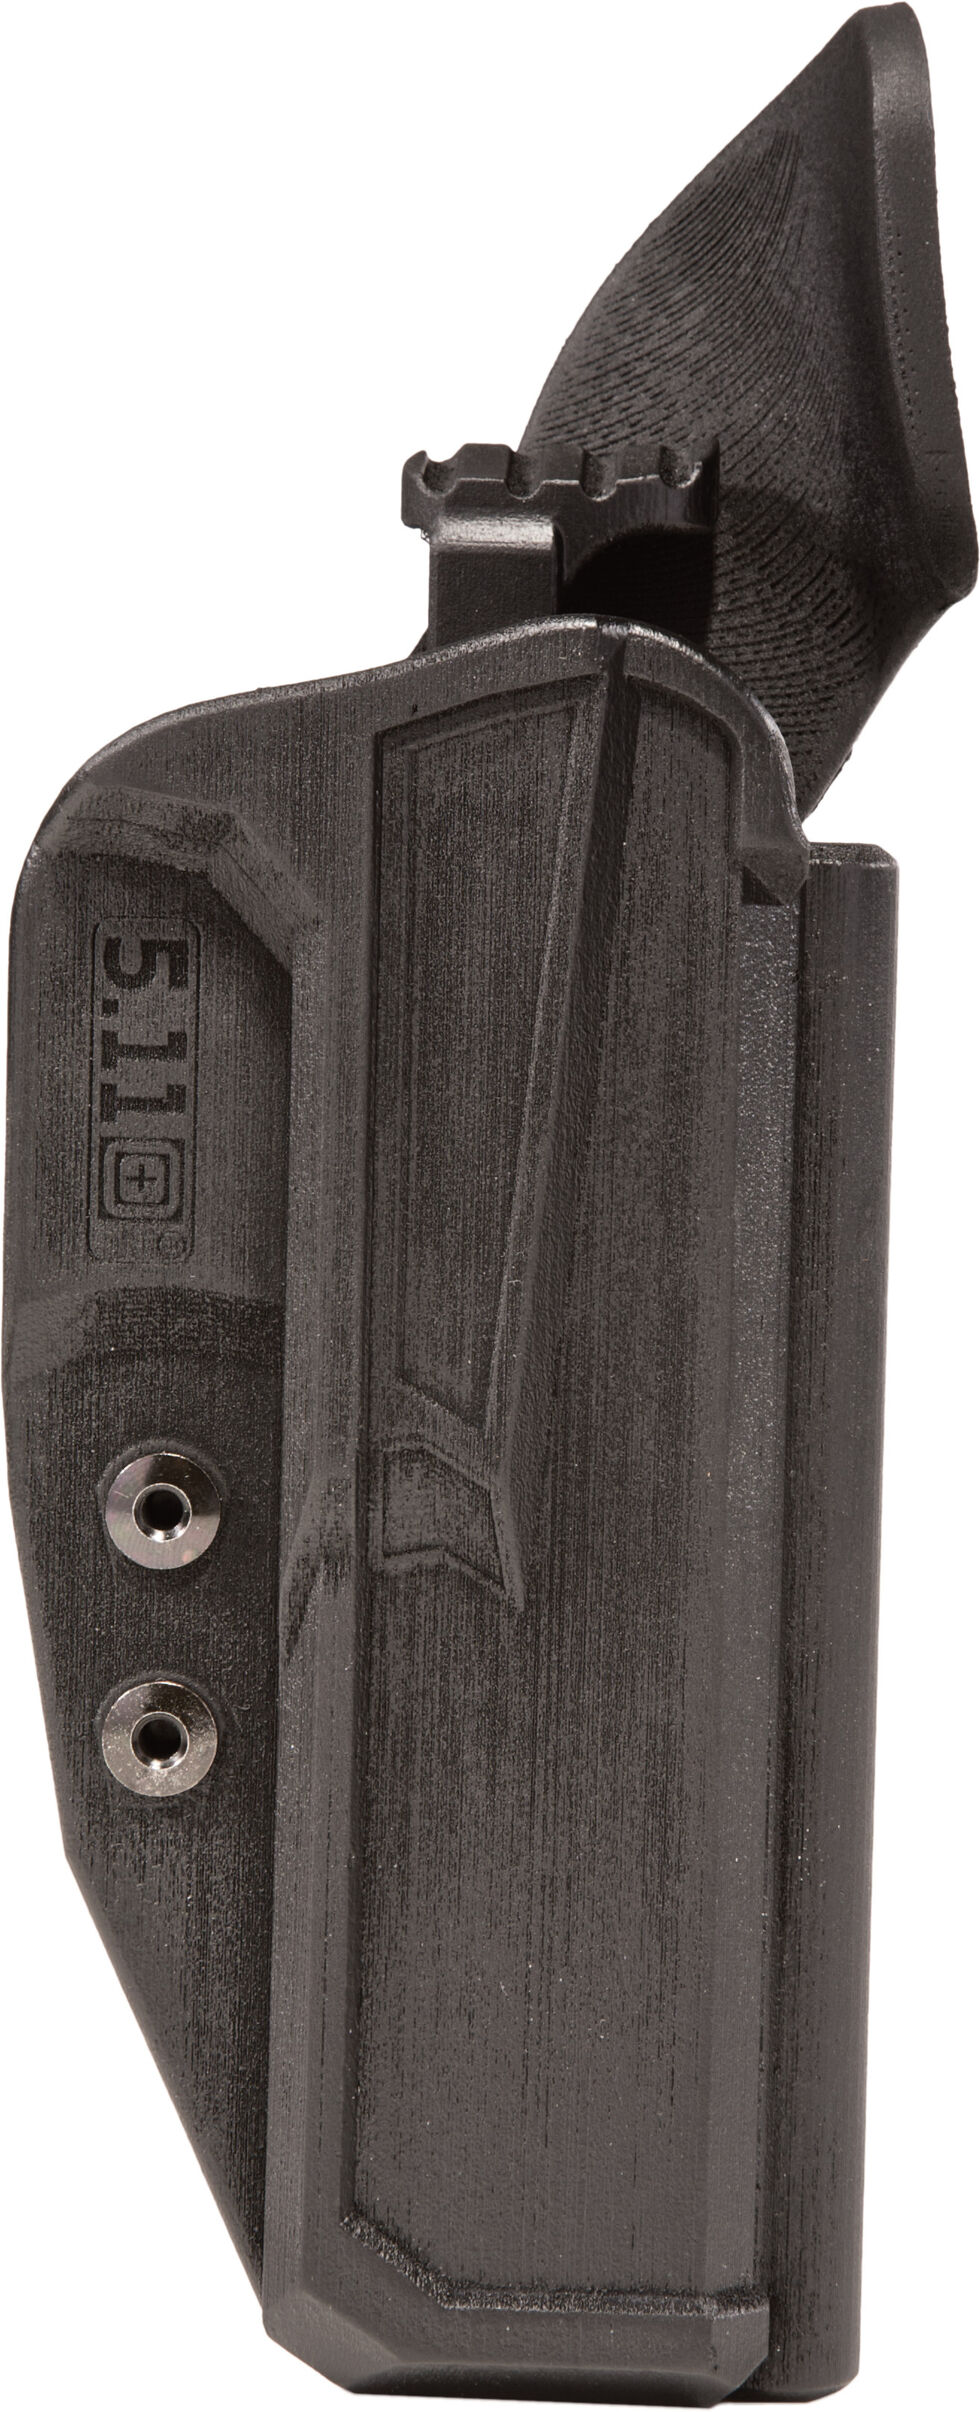 "5.11 Thumb Drive M&P Full Size Series (9/.40/.357) R/H -4"", Black, hi-res"